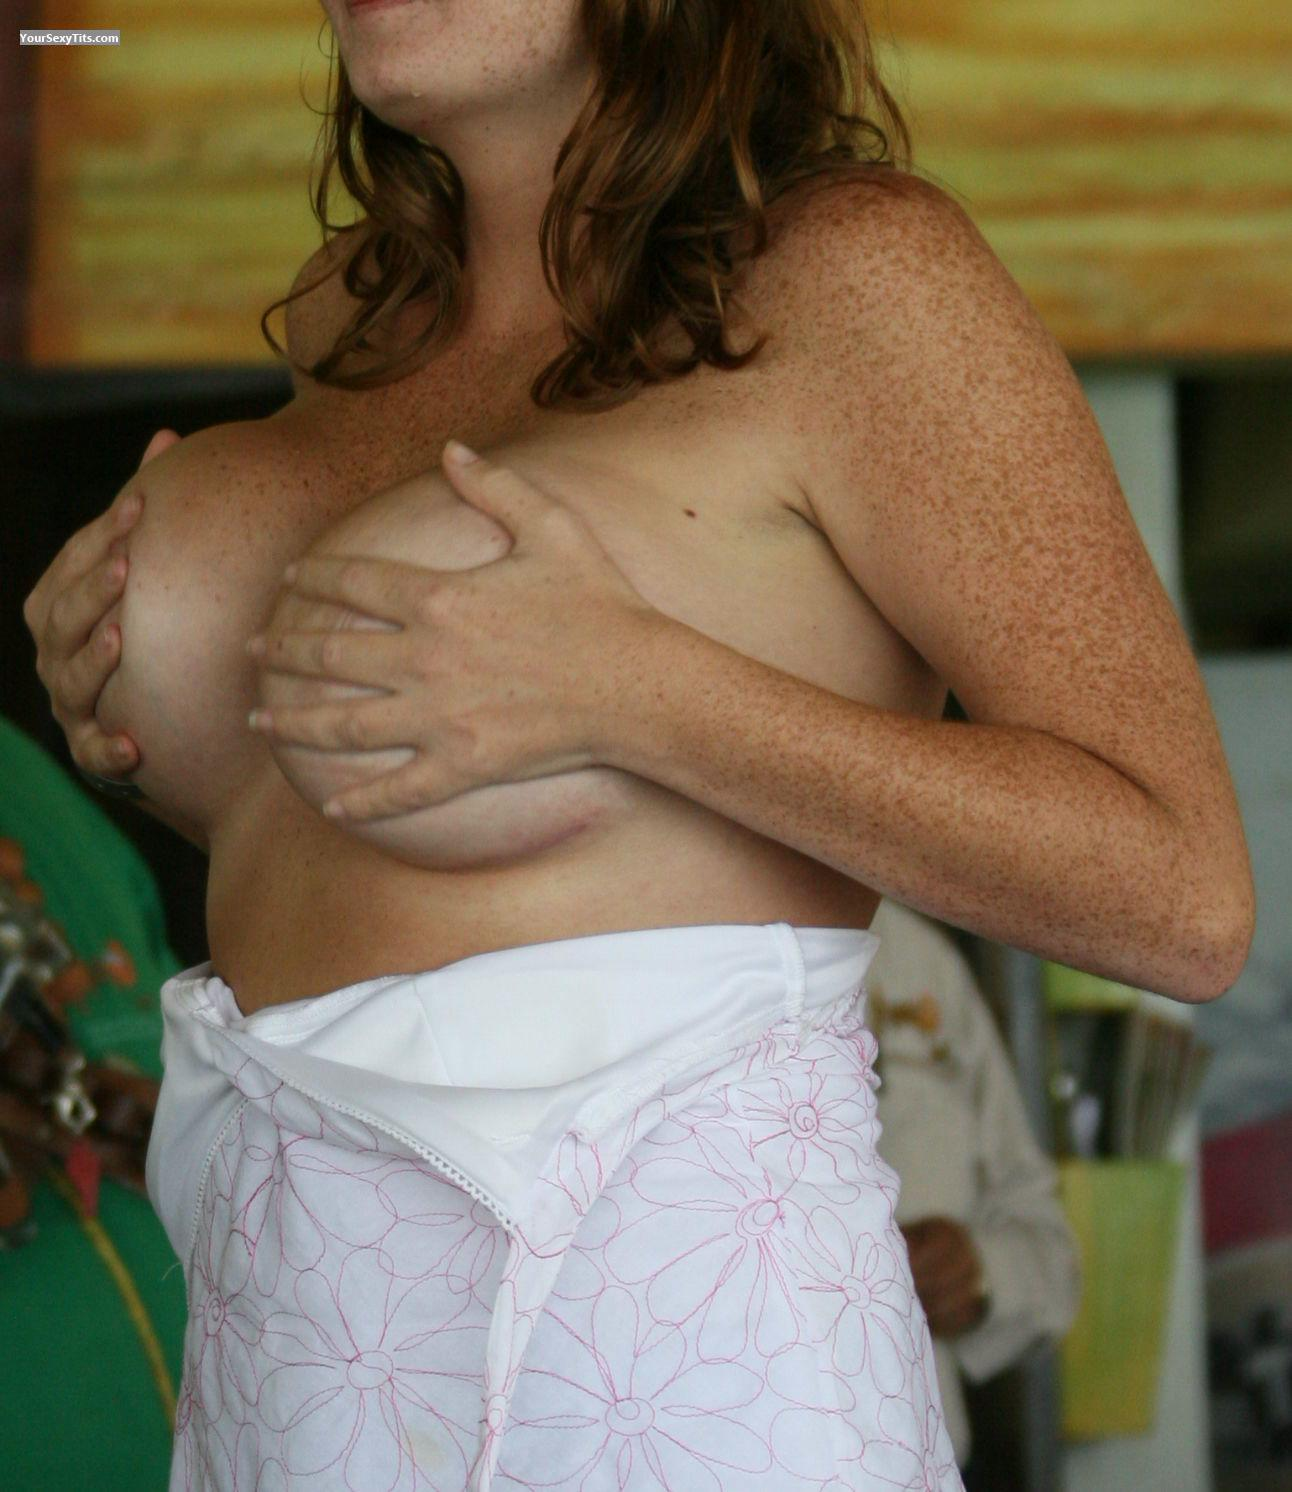 Tit Flash: Medium Tits - Guapa from Spain